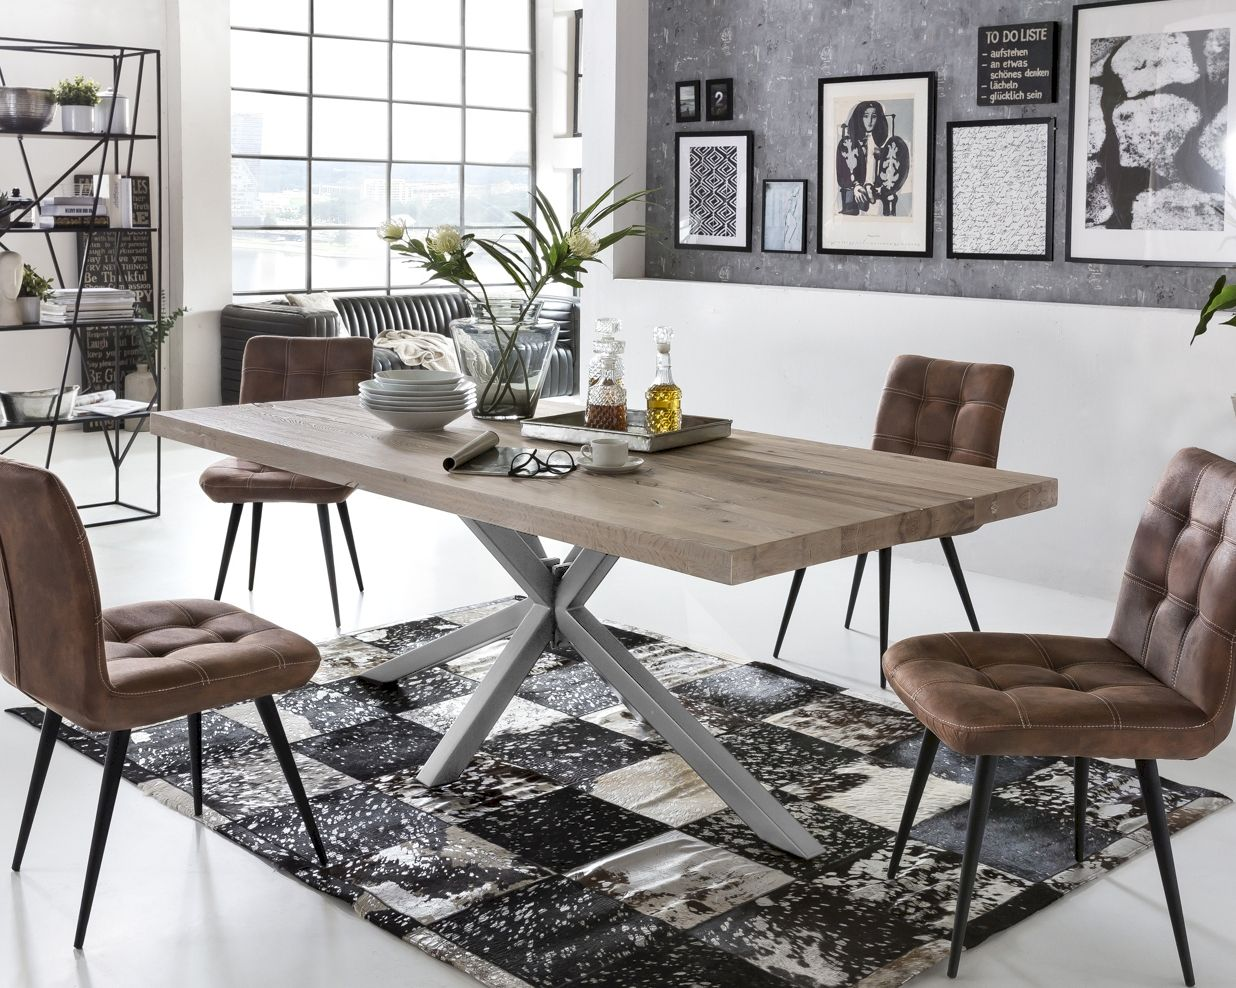 Exklusive Esstische Massivholz Sit Tops Tables Esstisch Massivholz Timber Slewo